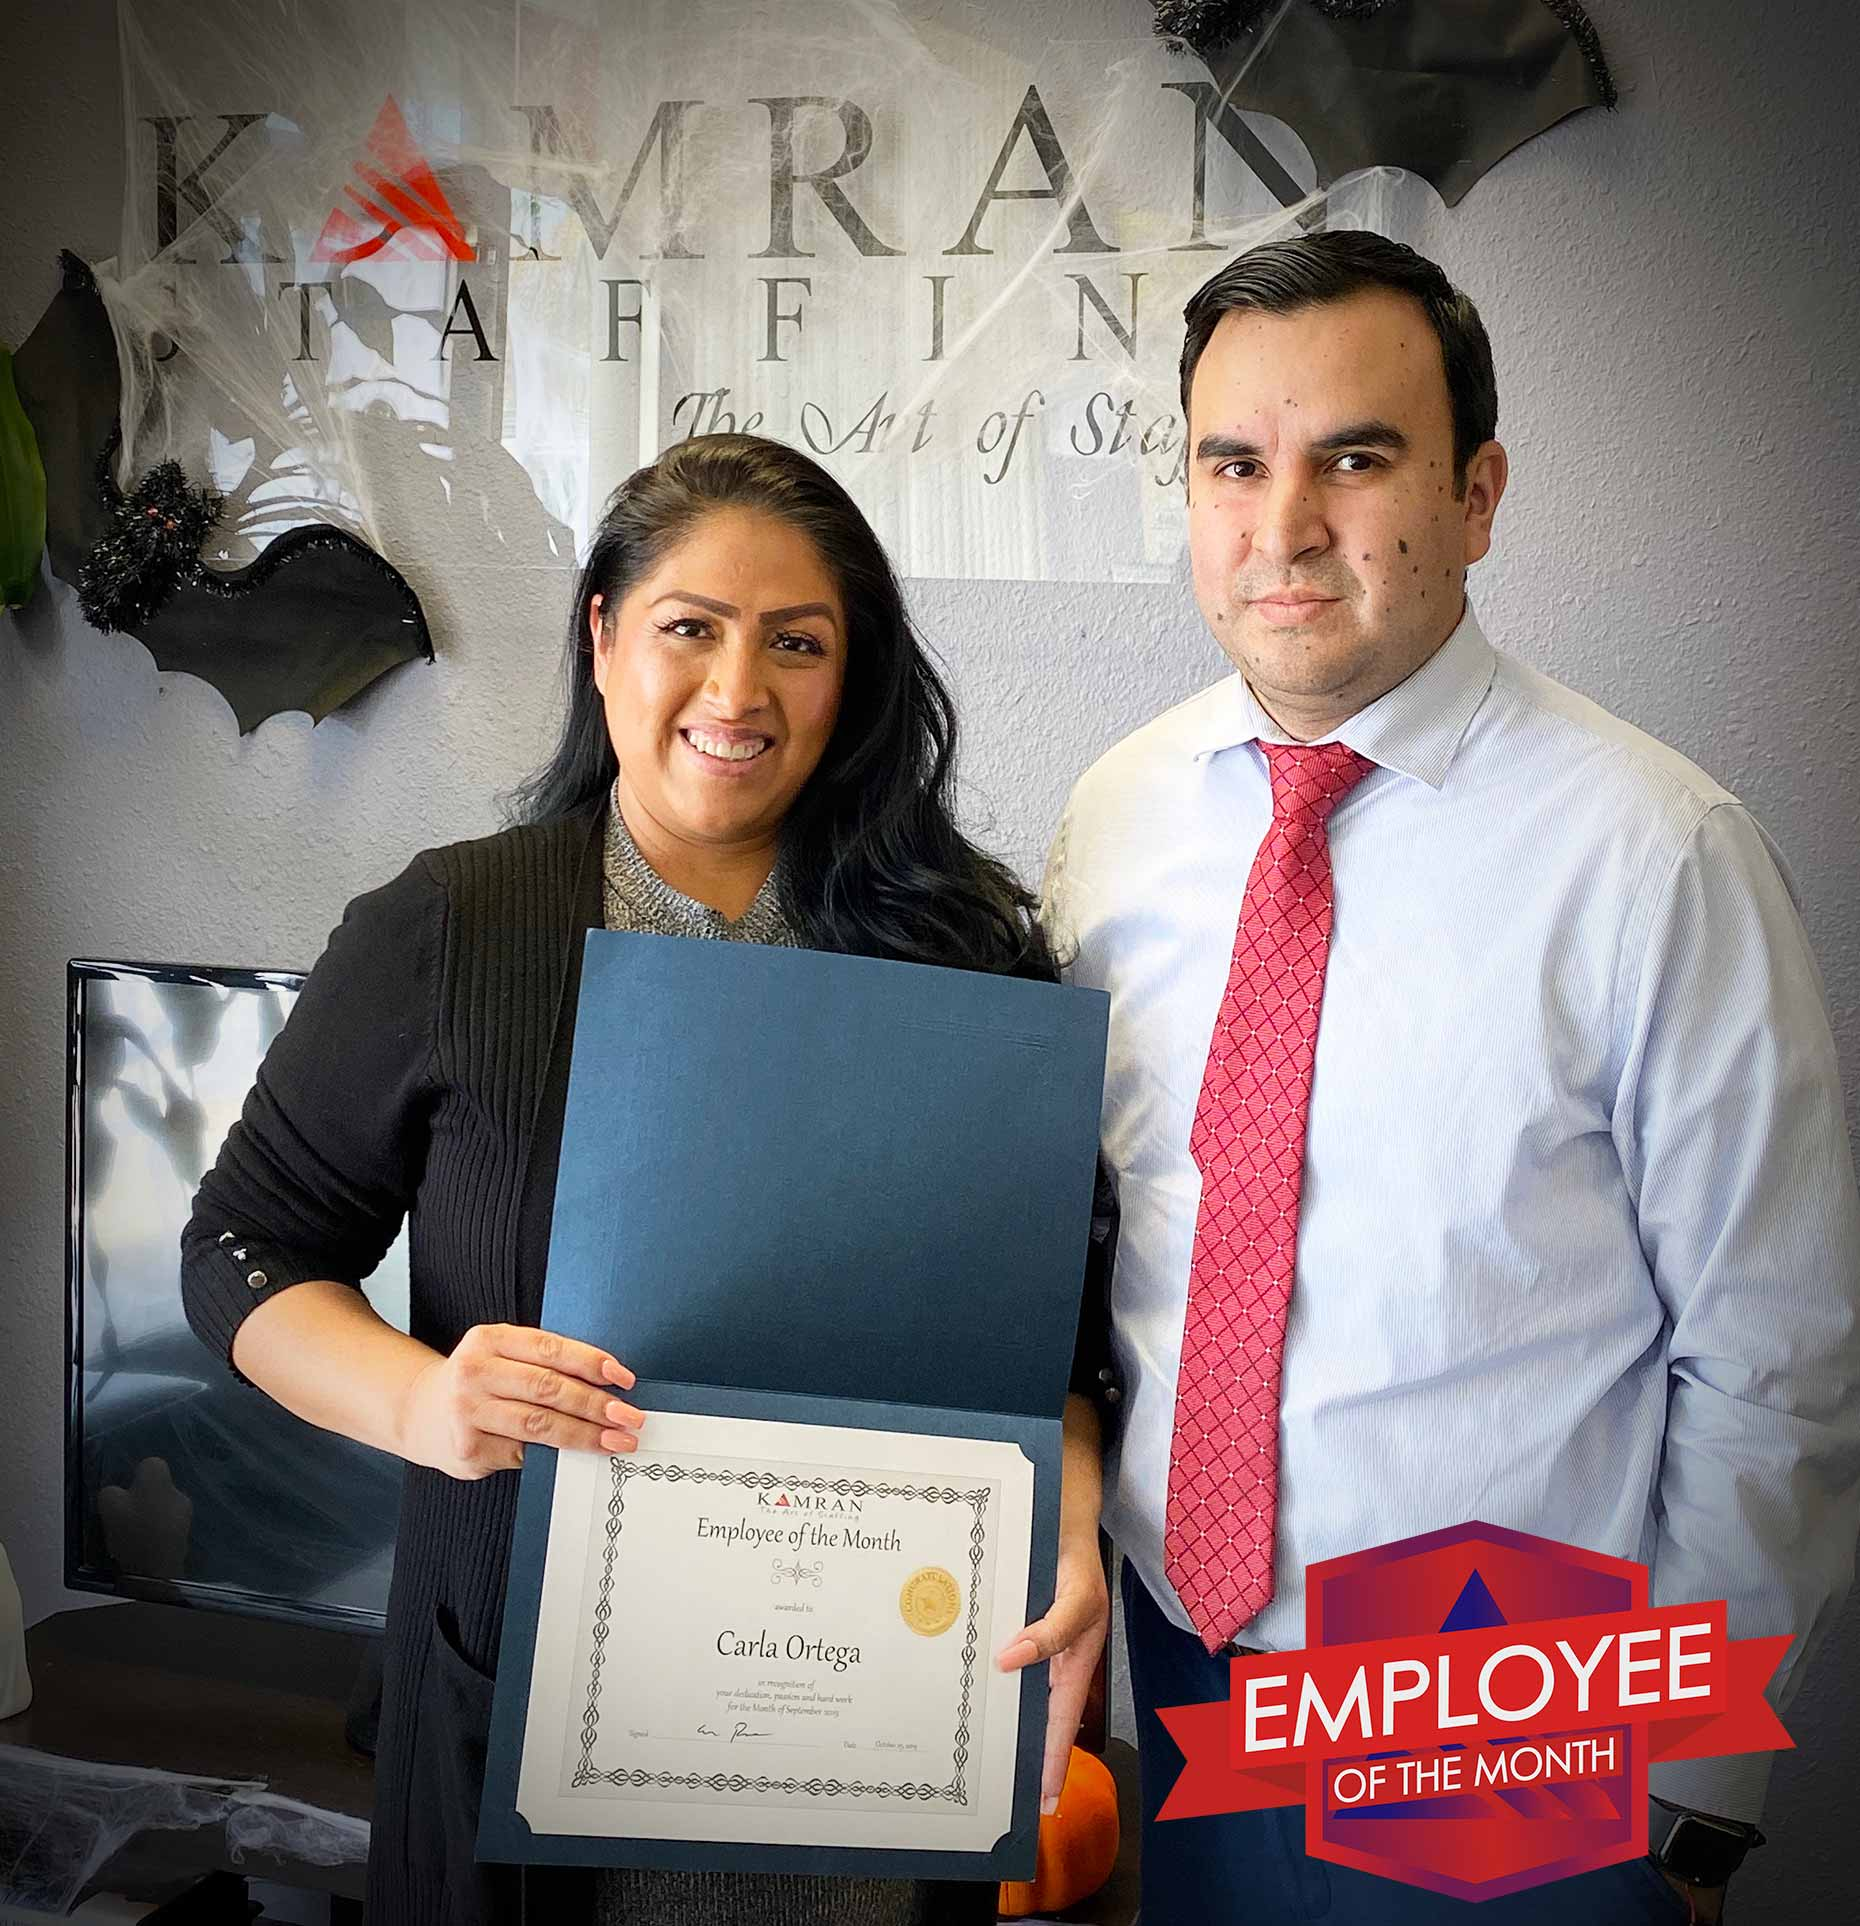 Kamran Staffing, Inc. - Employee of the Month - September 2019 - Carla Ortega